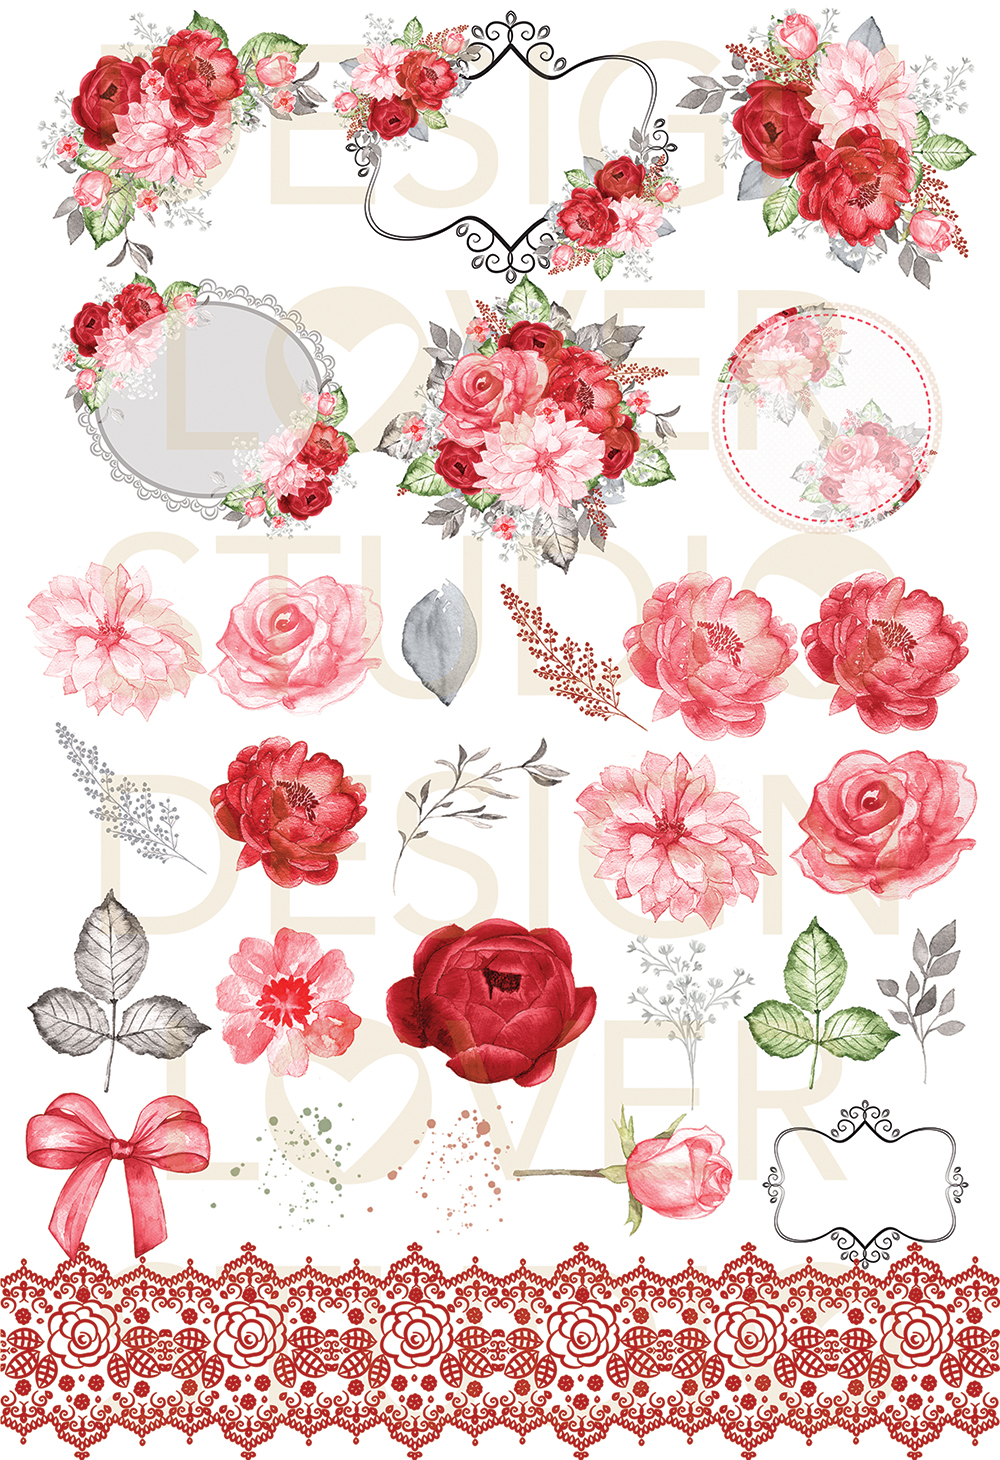 Watercolor RED ROMANCE design example image 2